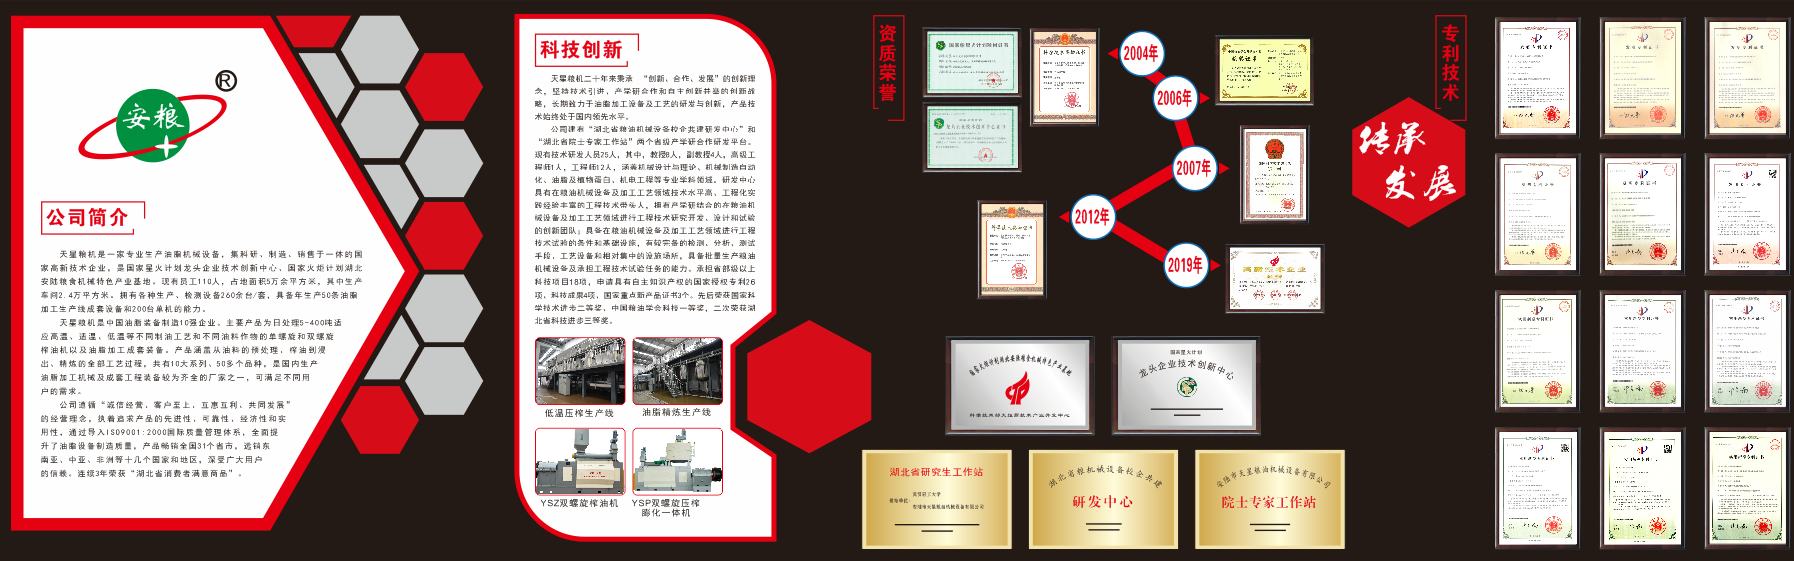 Anlu Tianxing Food And Oil Processing Mach. Equipment Co.Ltd